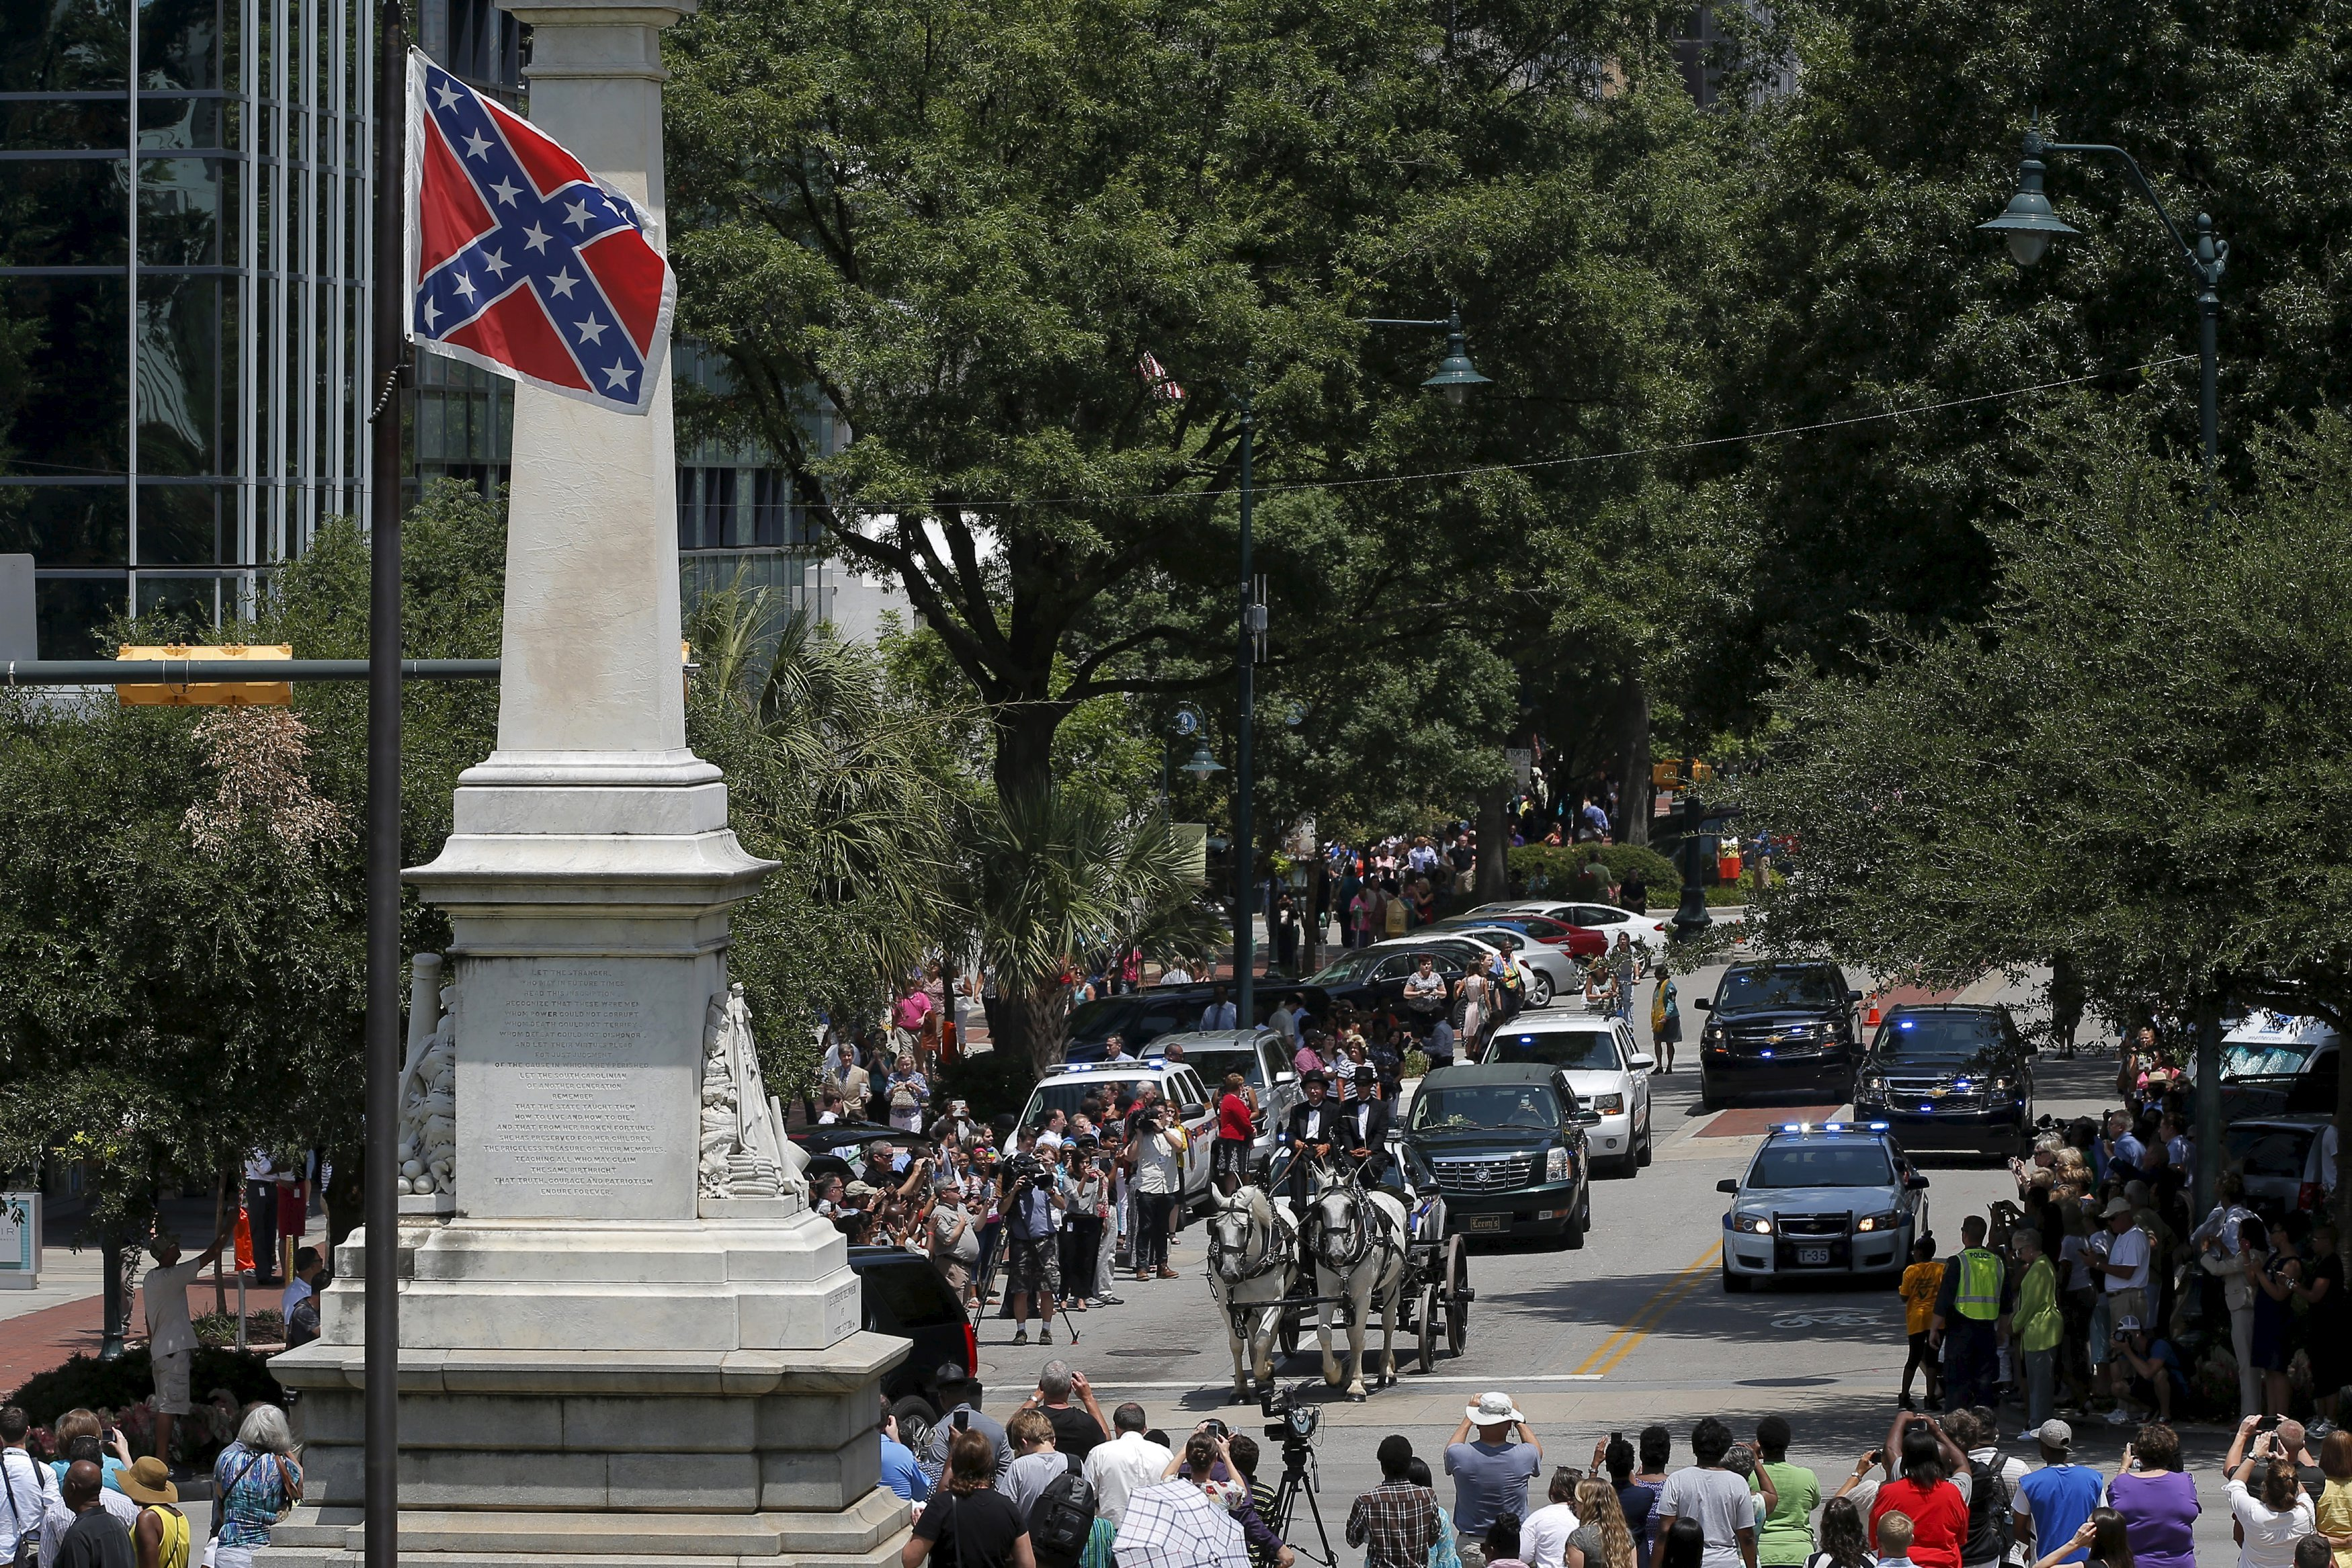 Pastor Clementa Pinckney s Body Carried Past Confederate Flag Into